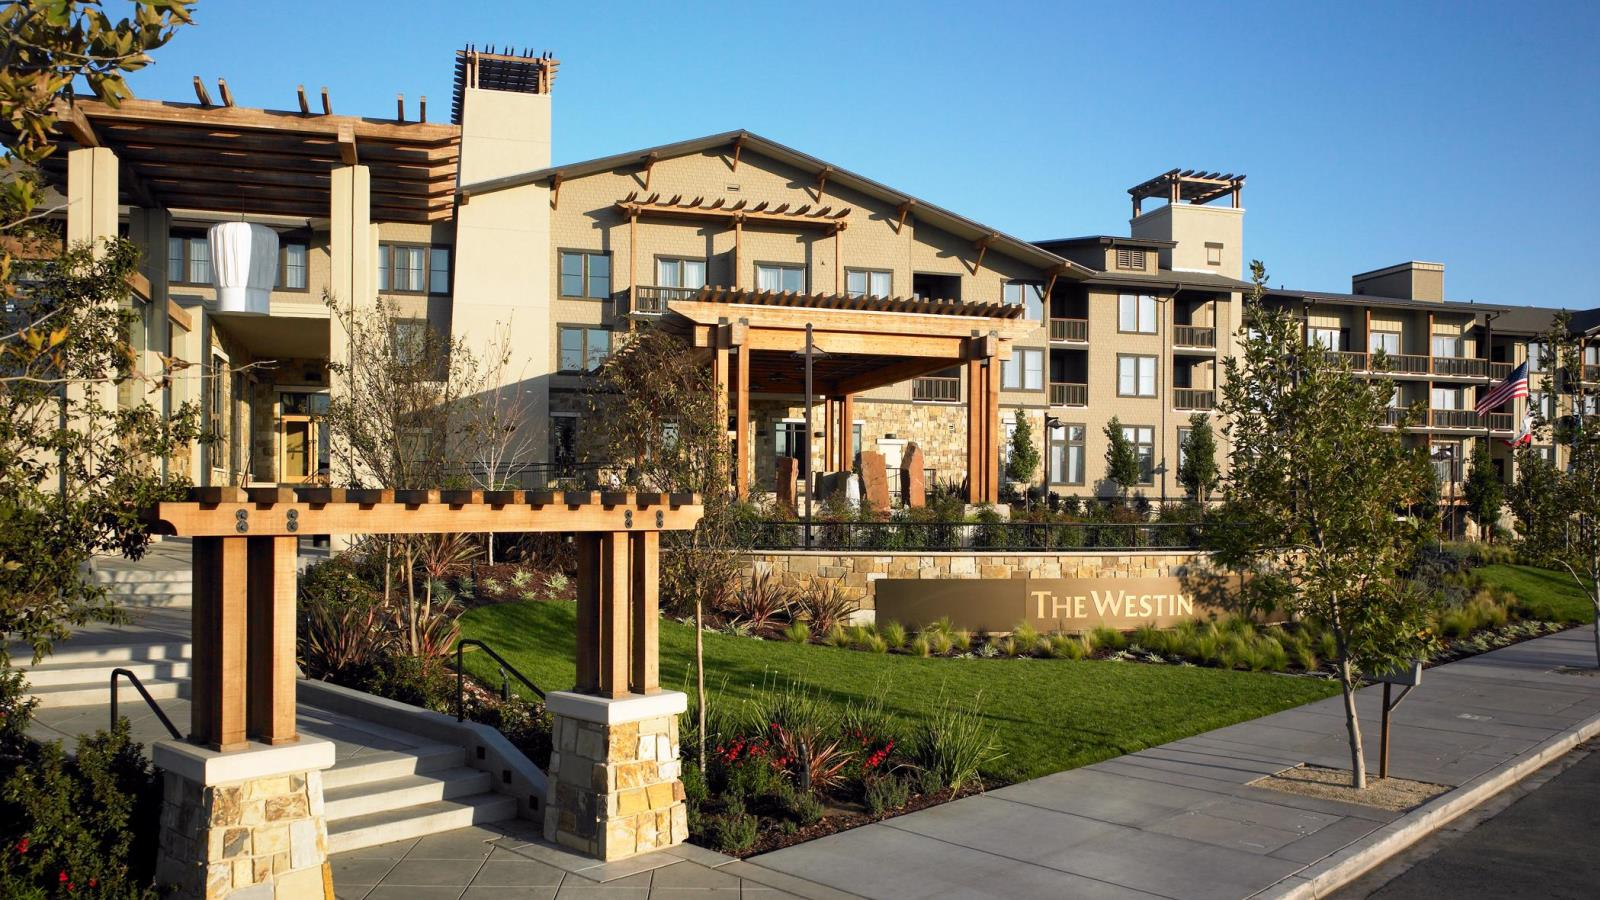 The Westin Verasa Napa invites DFV Wines associates to enjoy special rates.